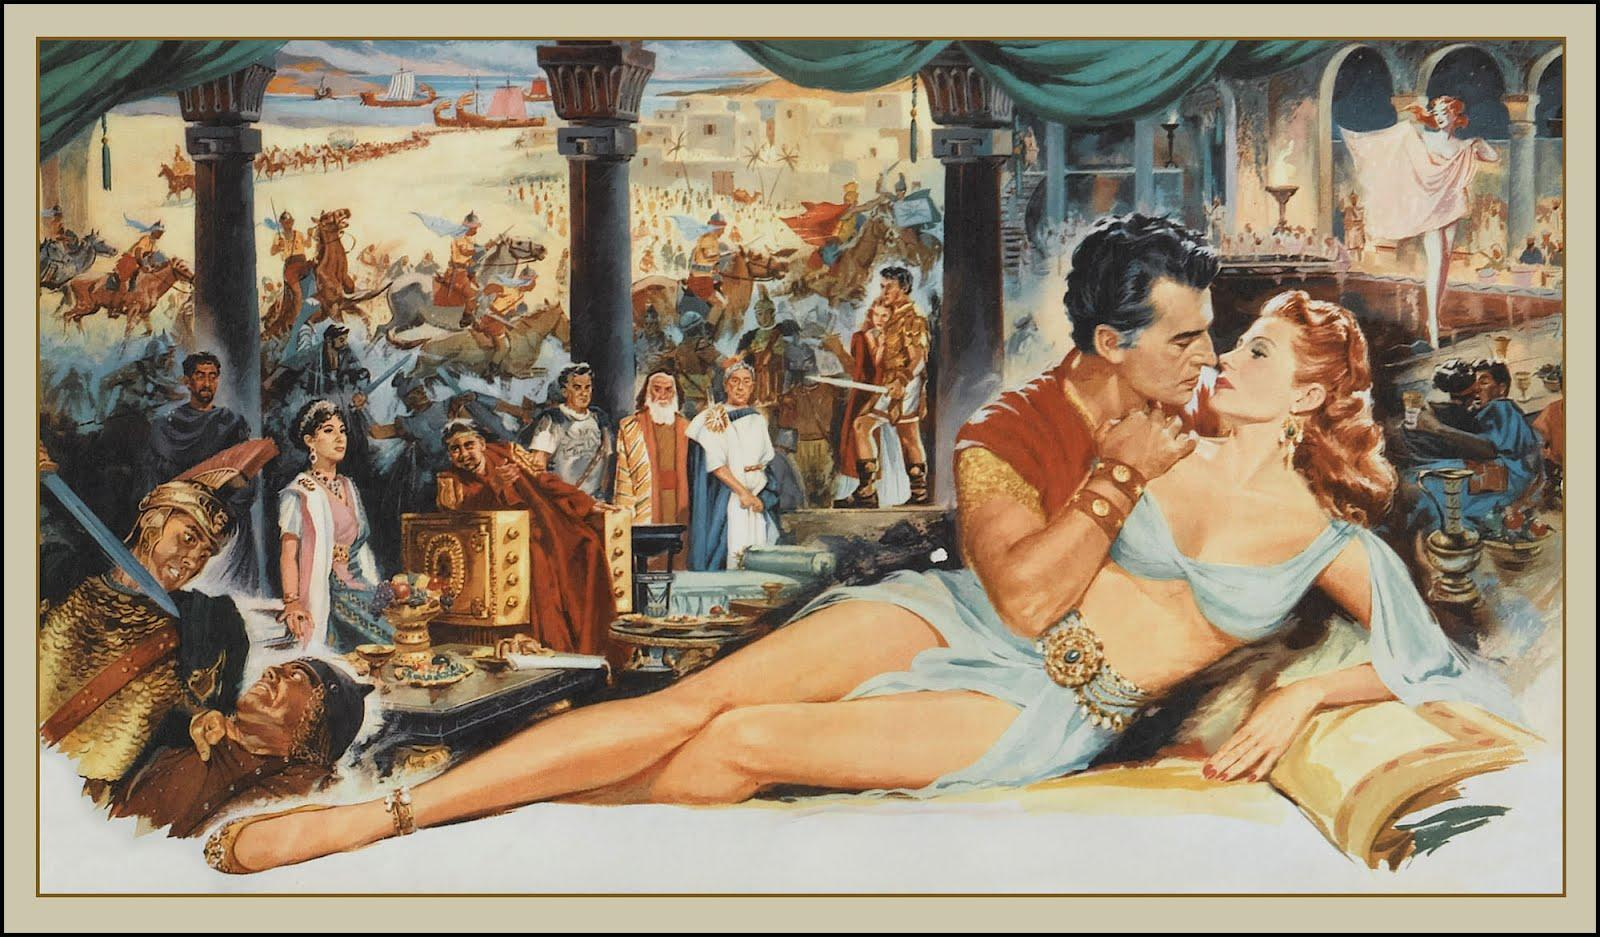 Salome_ColumbiaPictures_1953_100.jpg (1600×937)